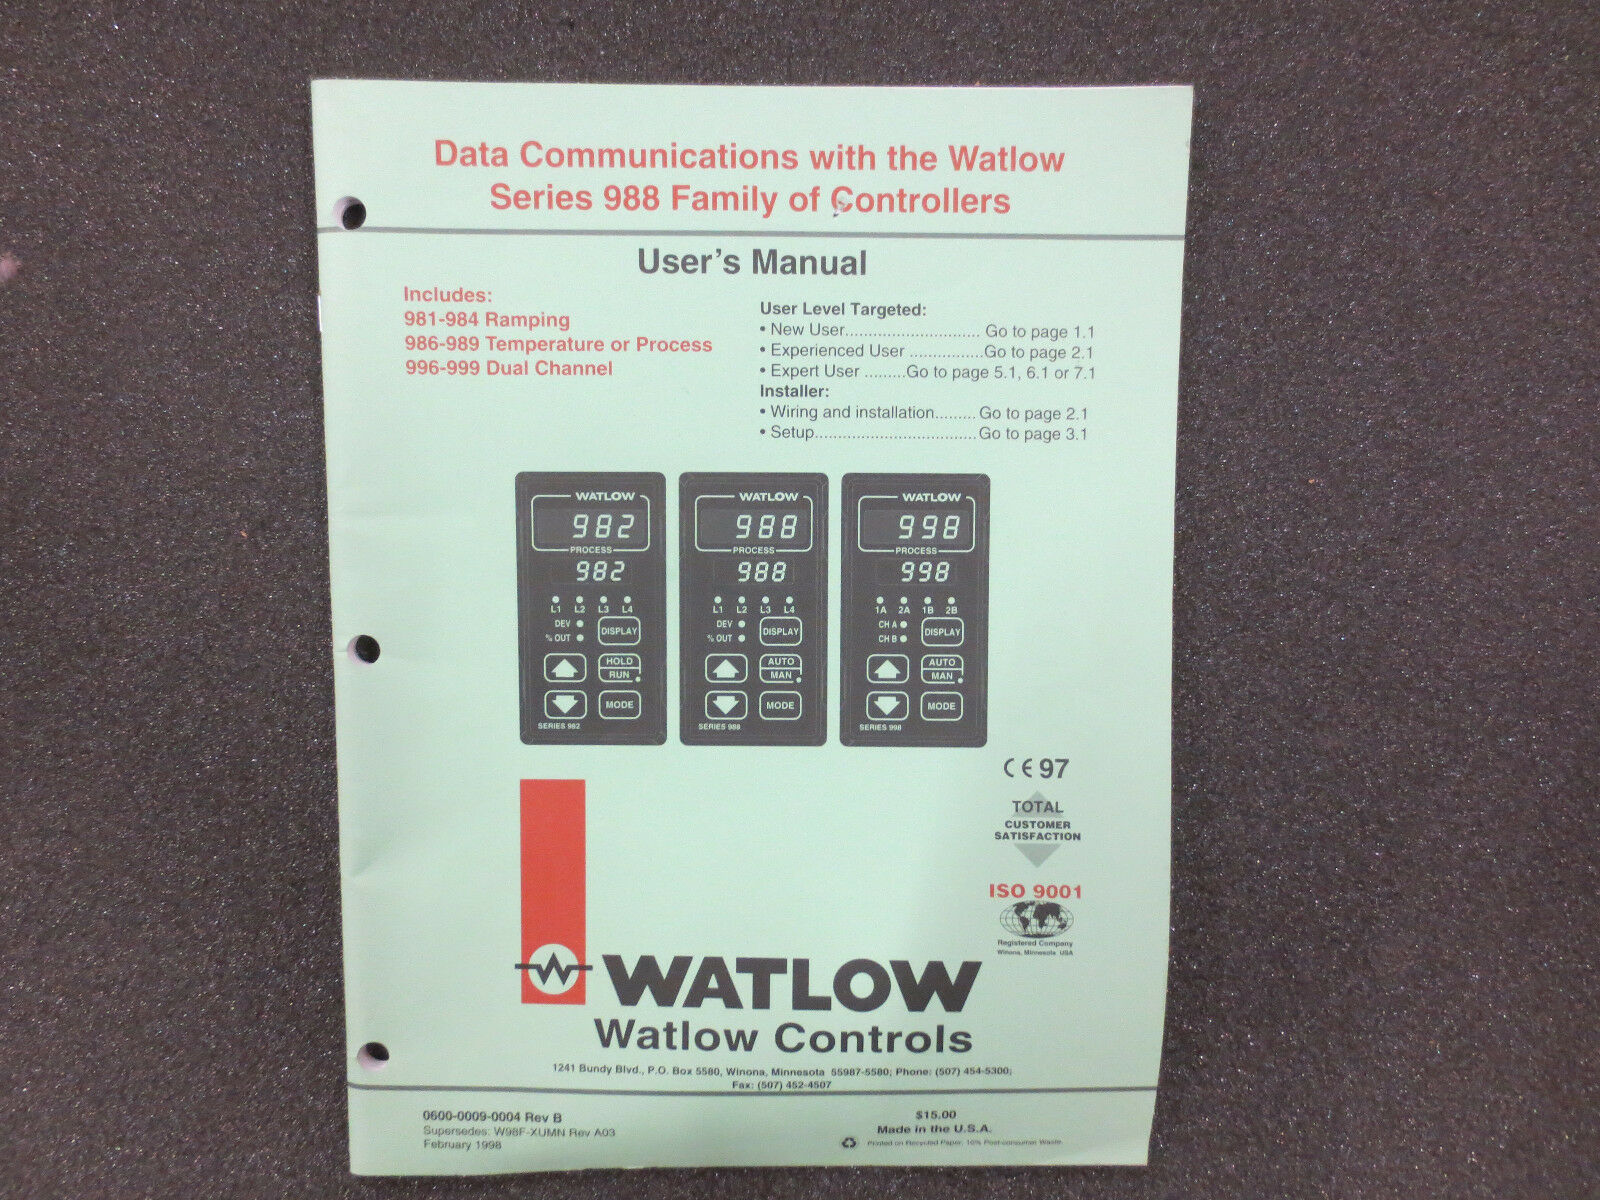 Watlow Manual Wiring Diagram Oreck Xl 988 Ez Zone Factory Reset Array Series Data Communications Ebay Rh Com